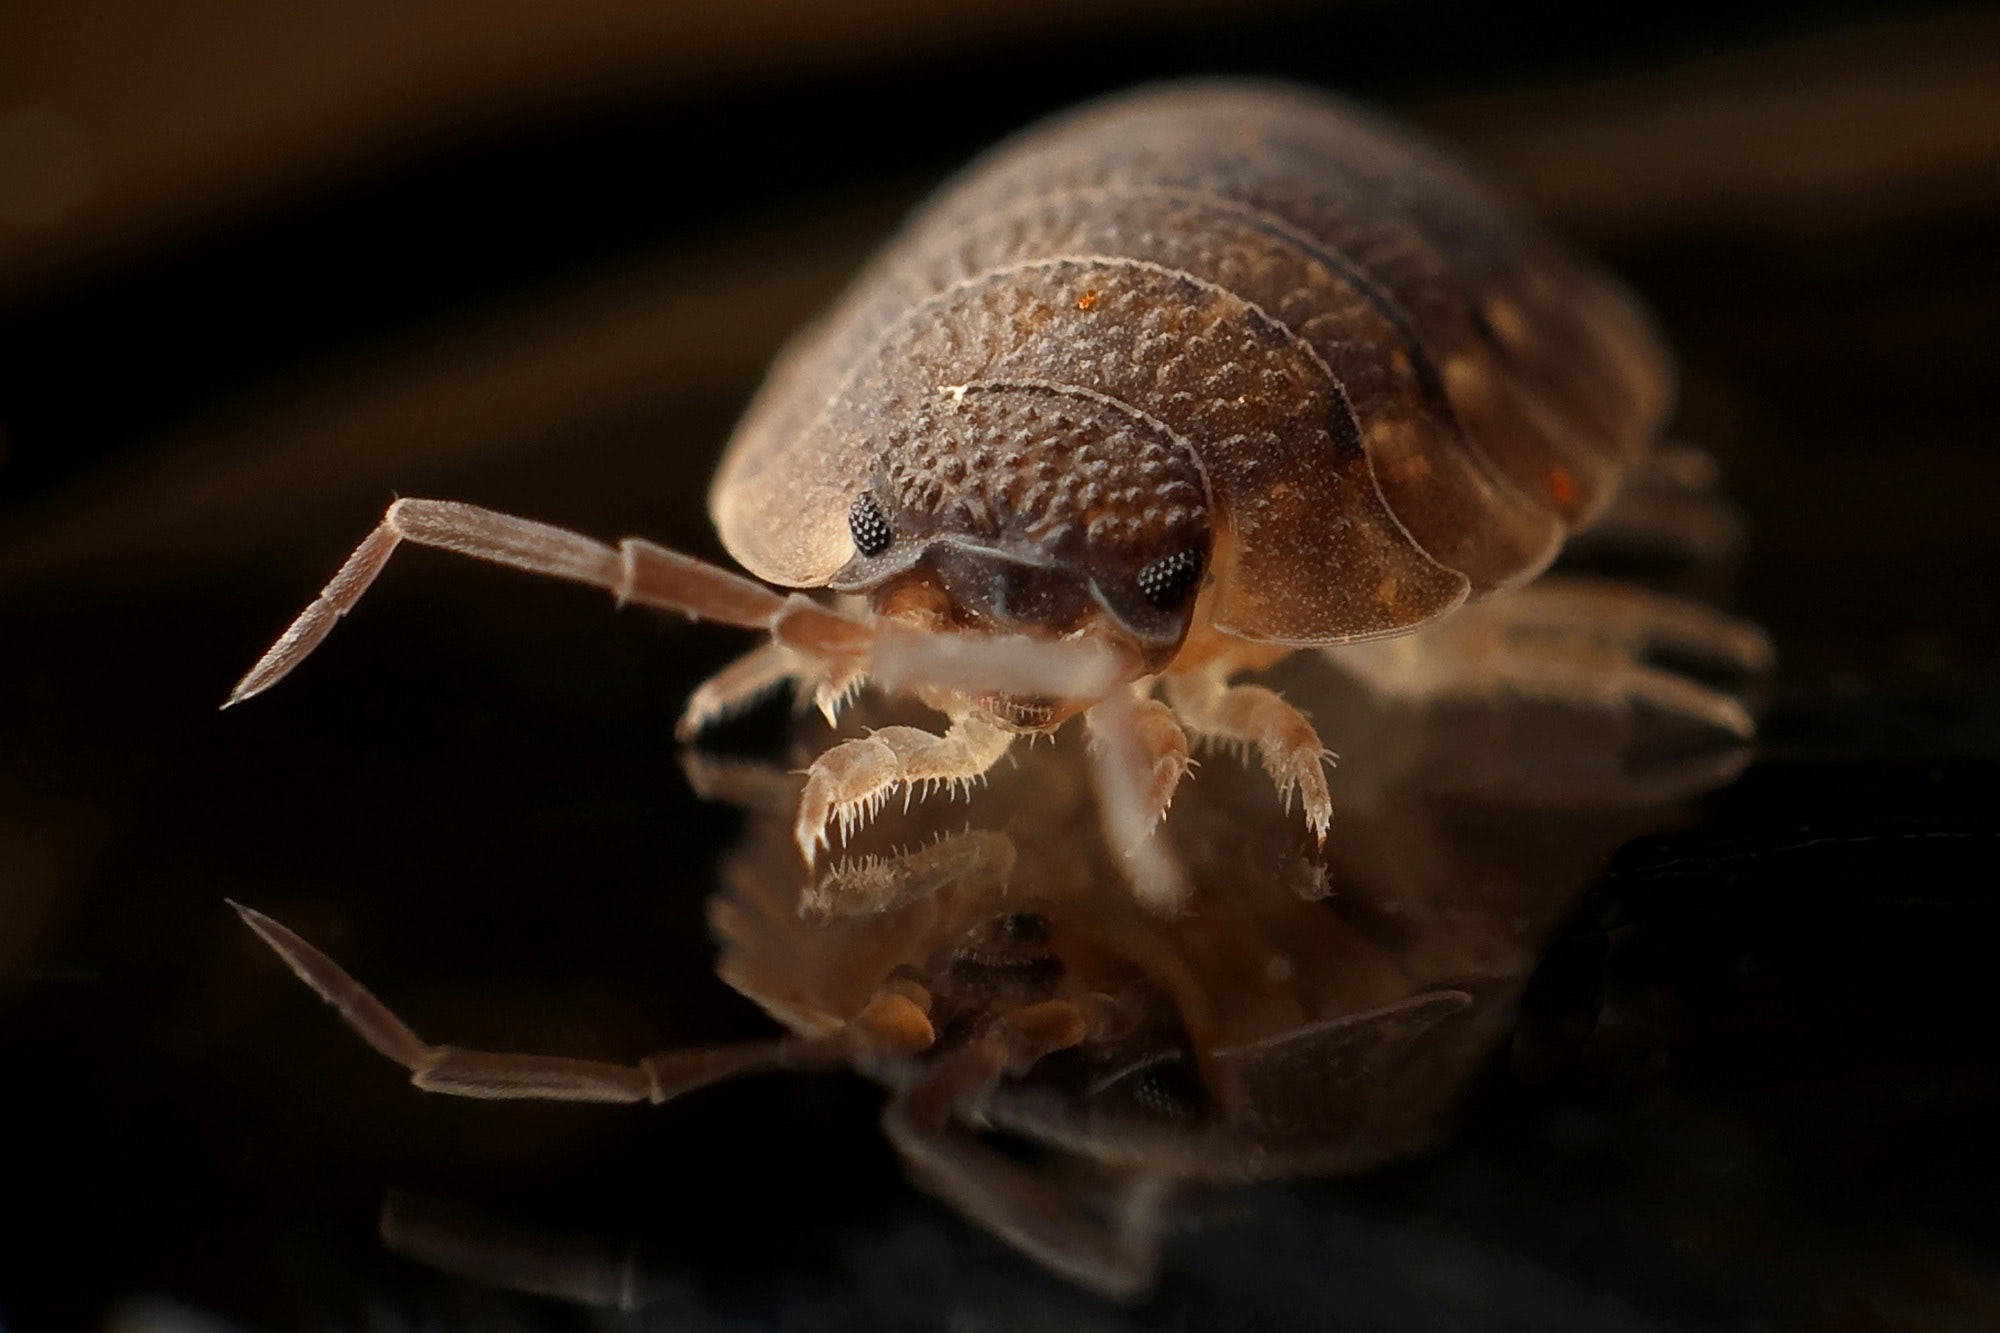 bed-bug-blood-sucker-bug-35804.jpg